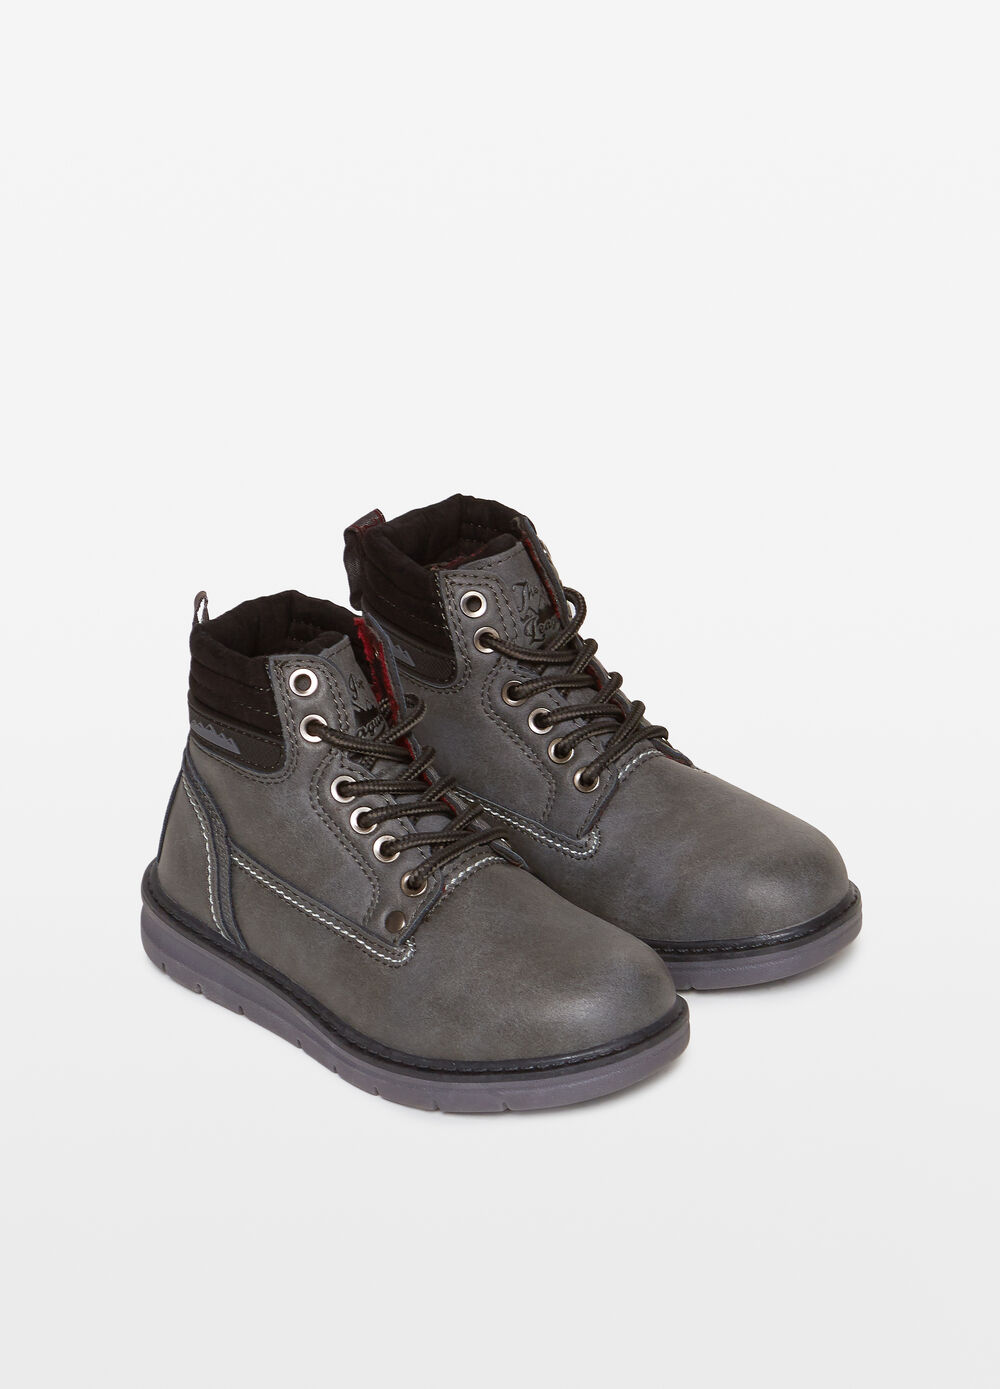 Ankle boots with laces and stitching